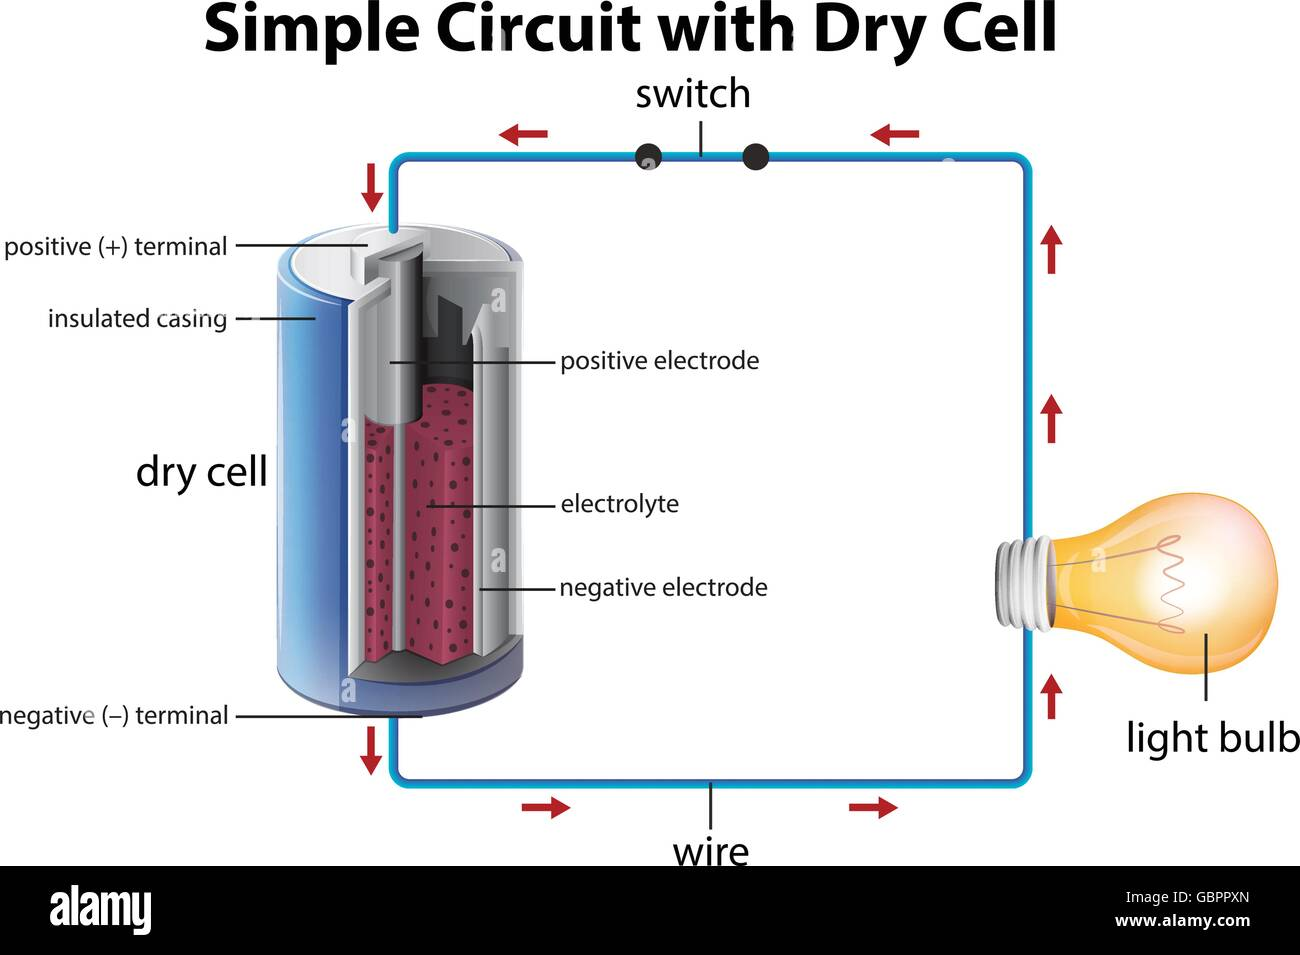 Diagram showing simple circuit with dry cell illustration Stock ...